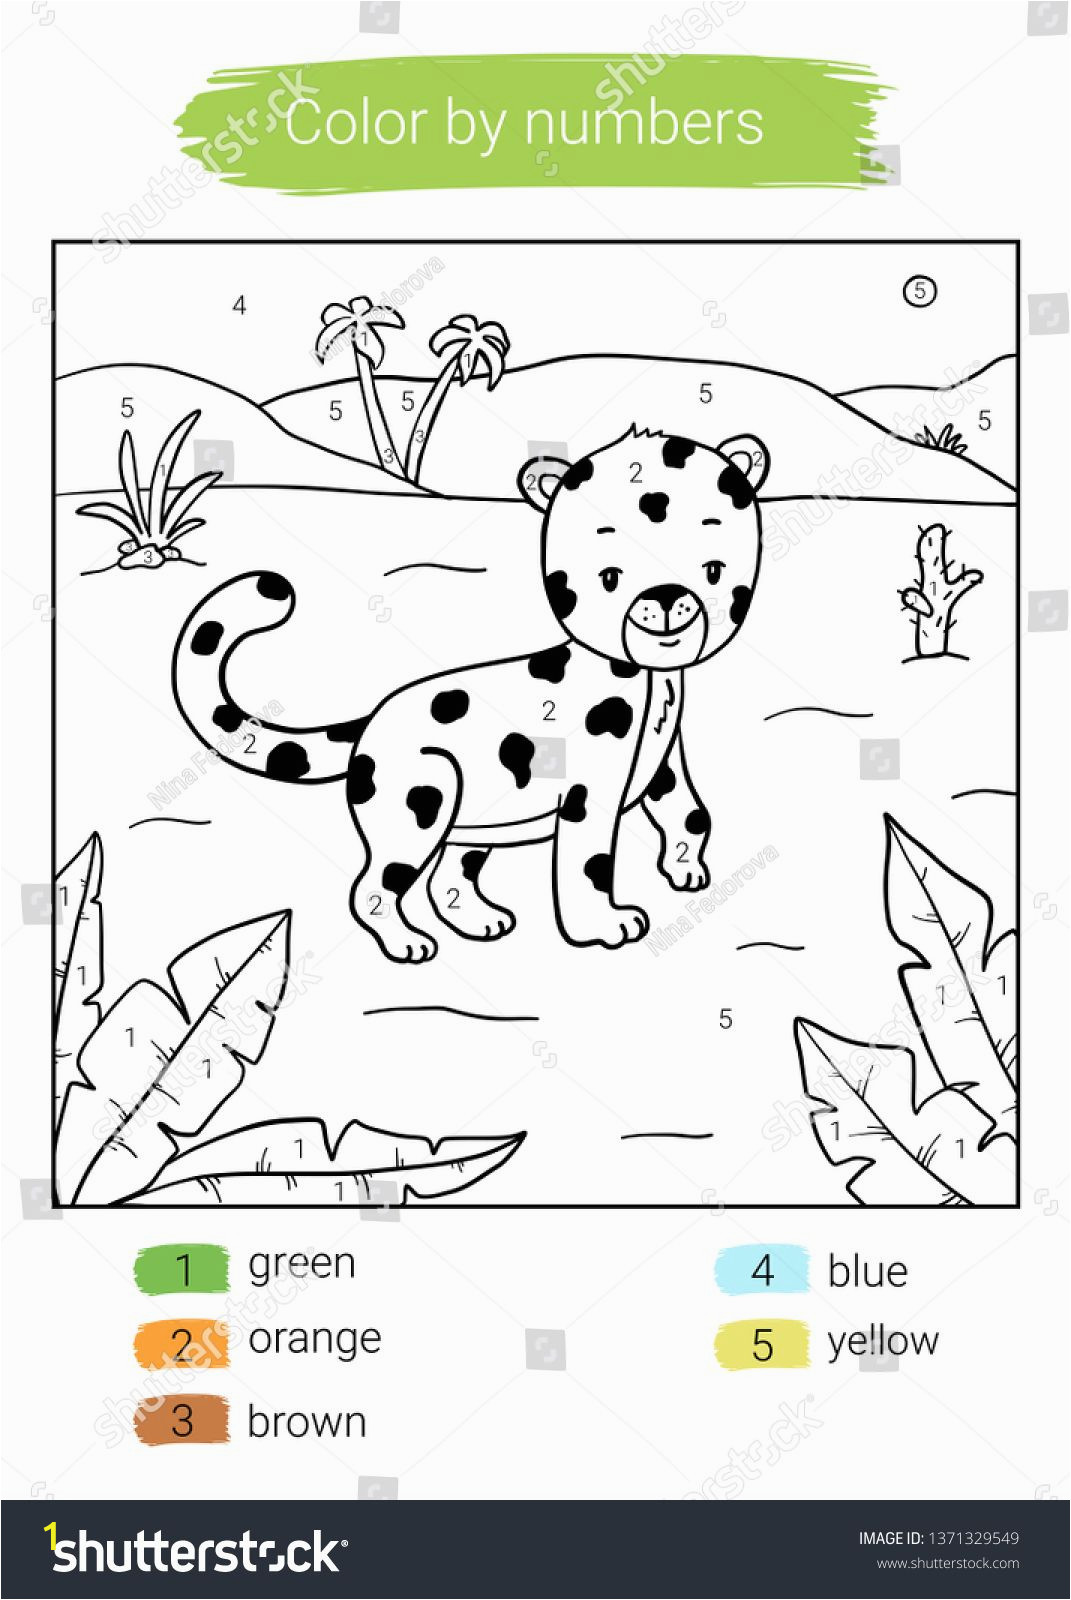 Color by Number Coloring Book Game Color by Number Leopard Educational Children Game Coloring